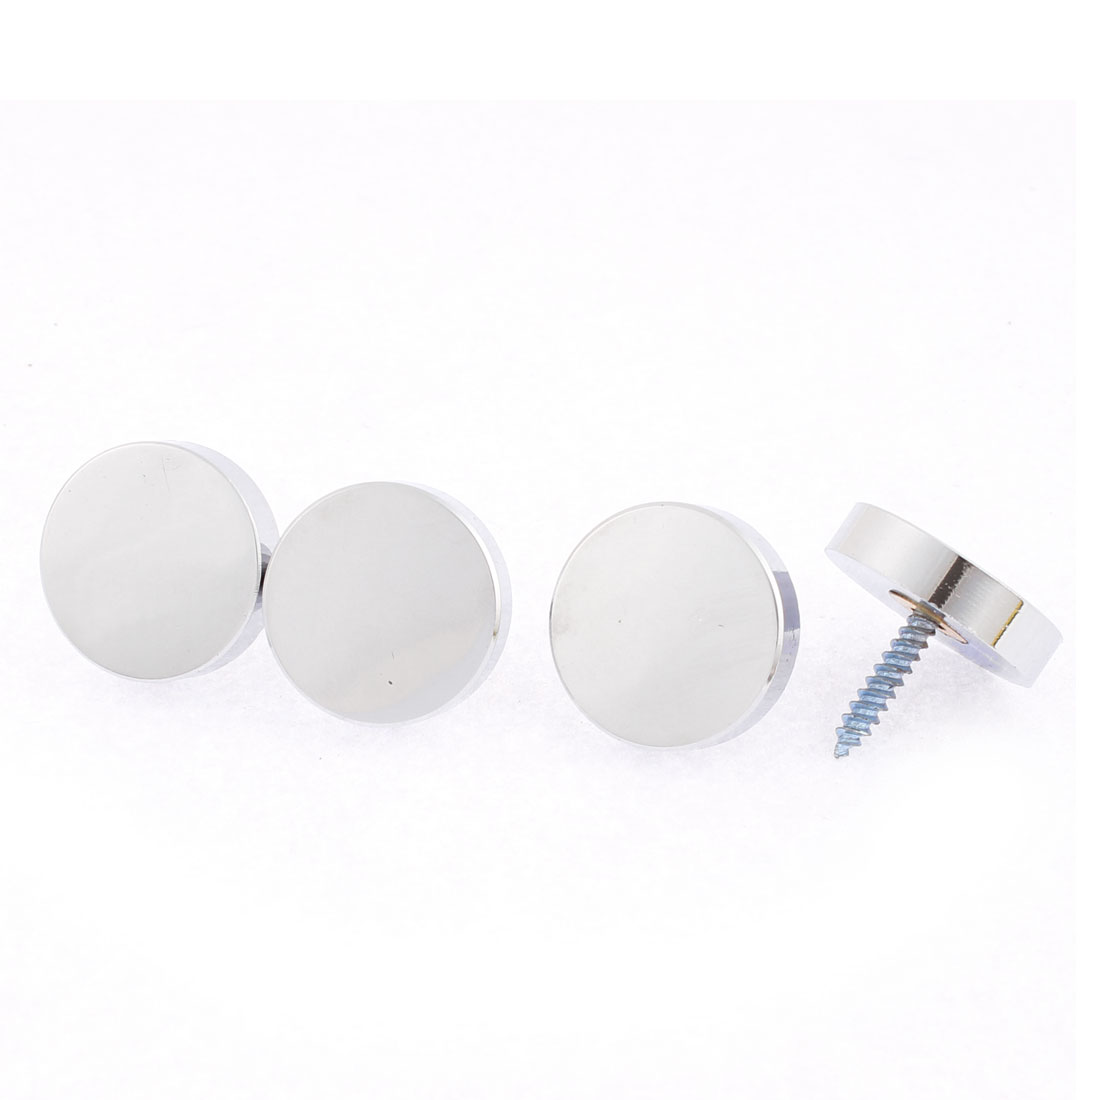 Tea Table Screw Cap Mirror Nails Silver Tone 4mm Thread 4PCS